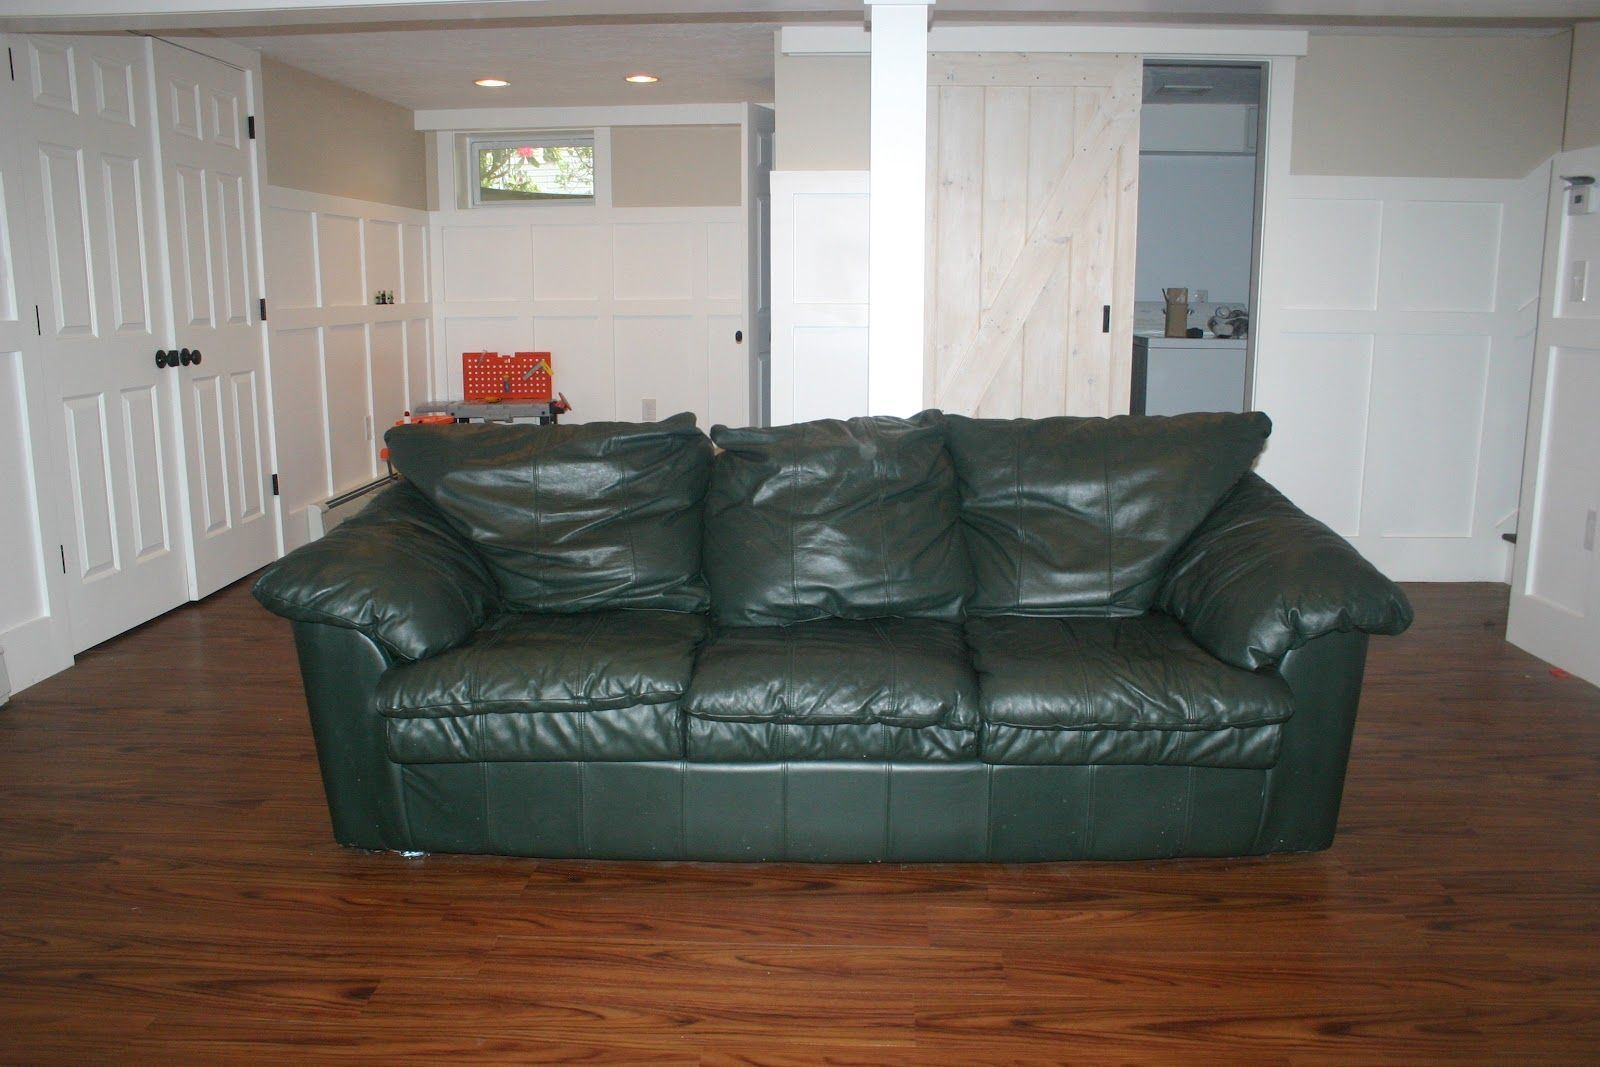 Etonnant Find DARK GREEN LEATHER SOFA | It Is Green, Dark Hunter Green. Those Were  My Colors Back Then .